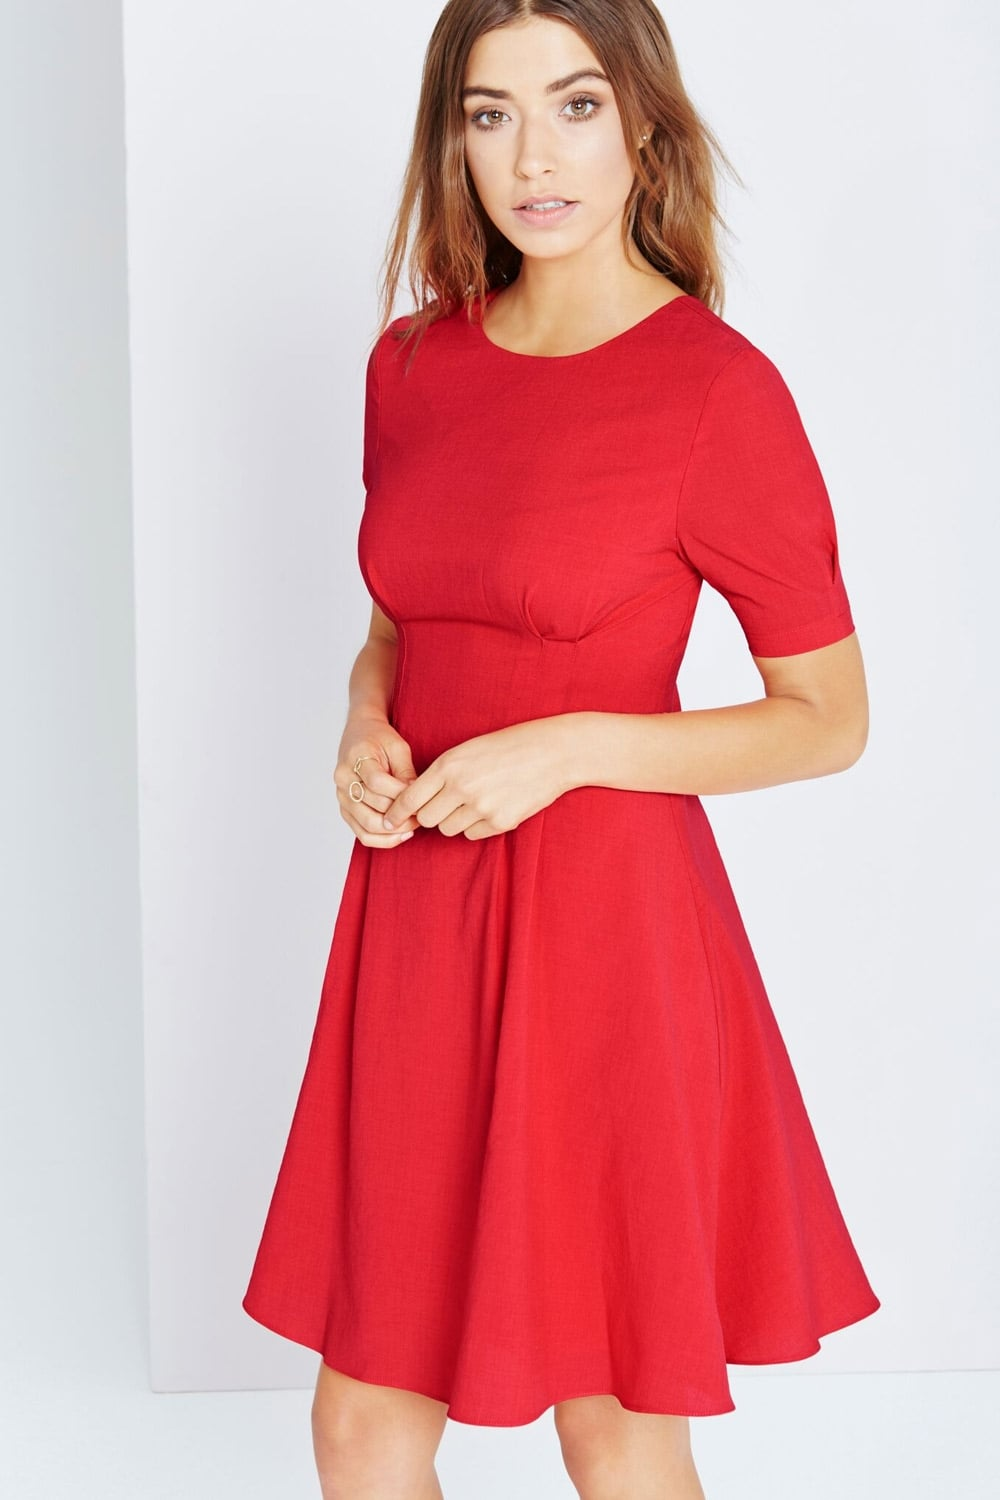 c76ed80869 Little Mistress Red Fit And Flare Midi Dress - Little Mistress from ...